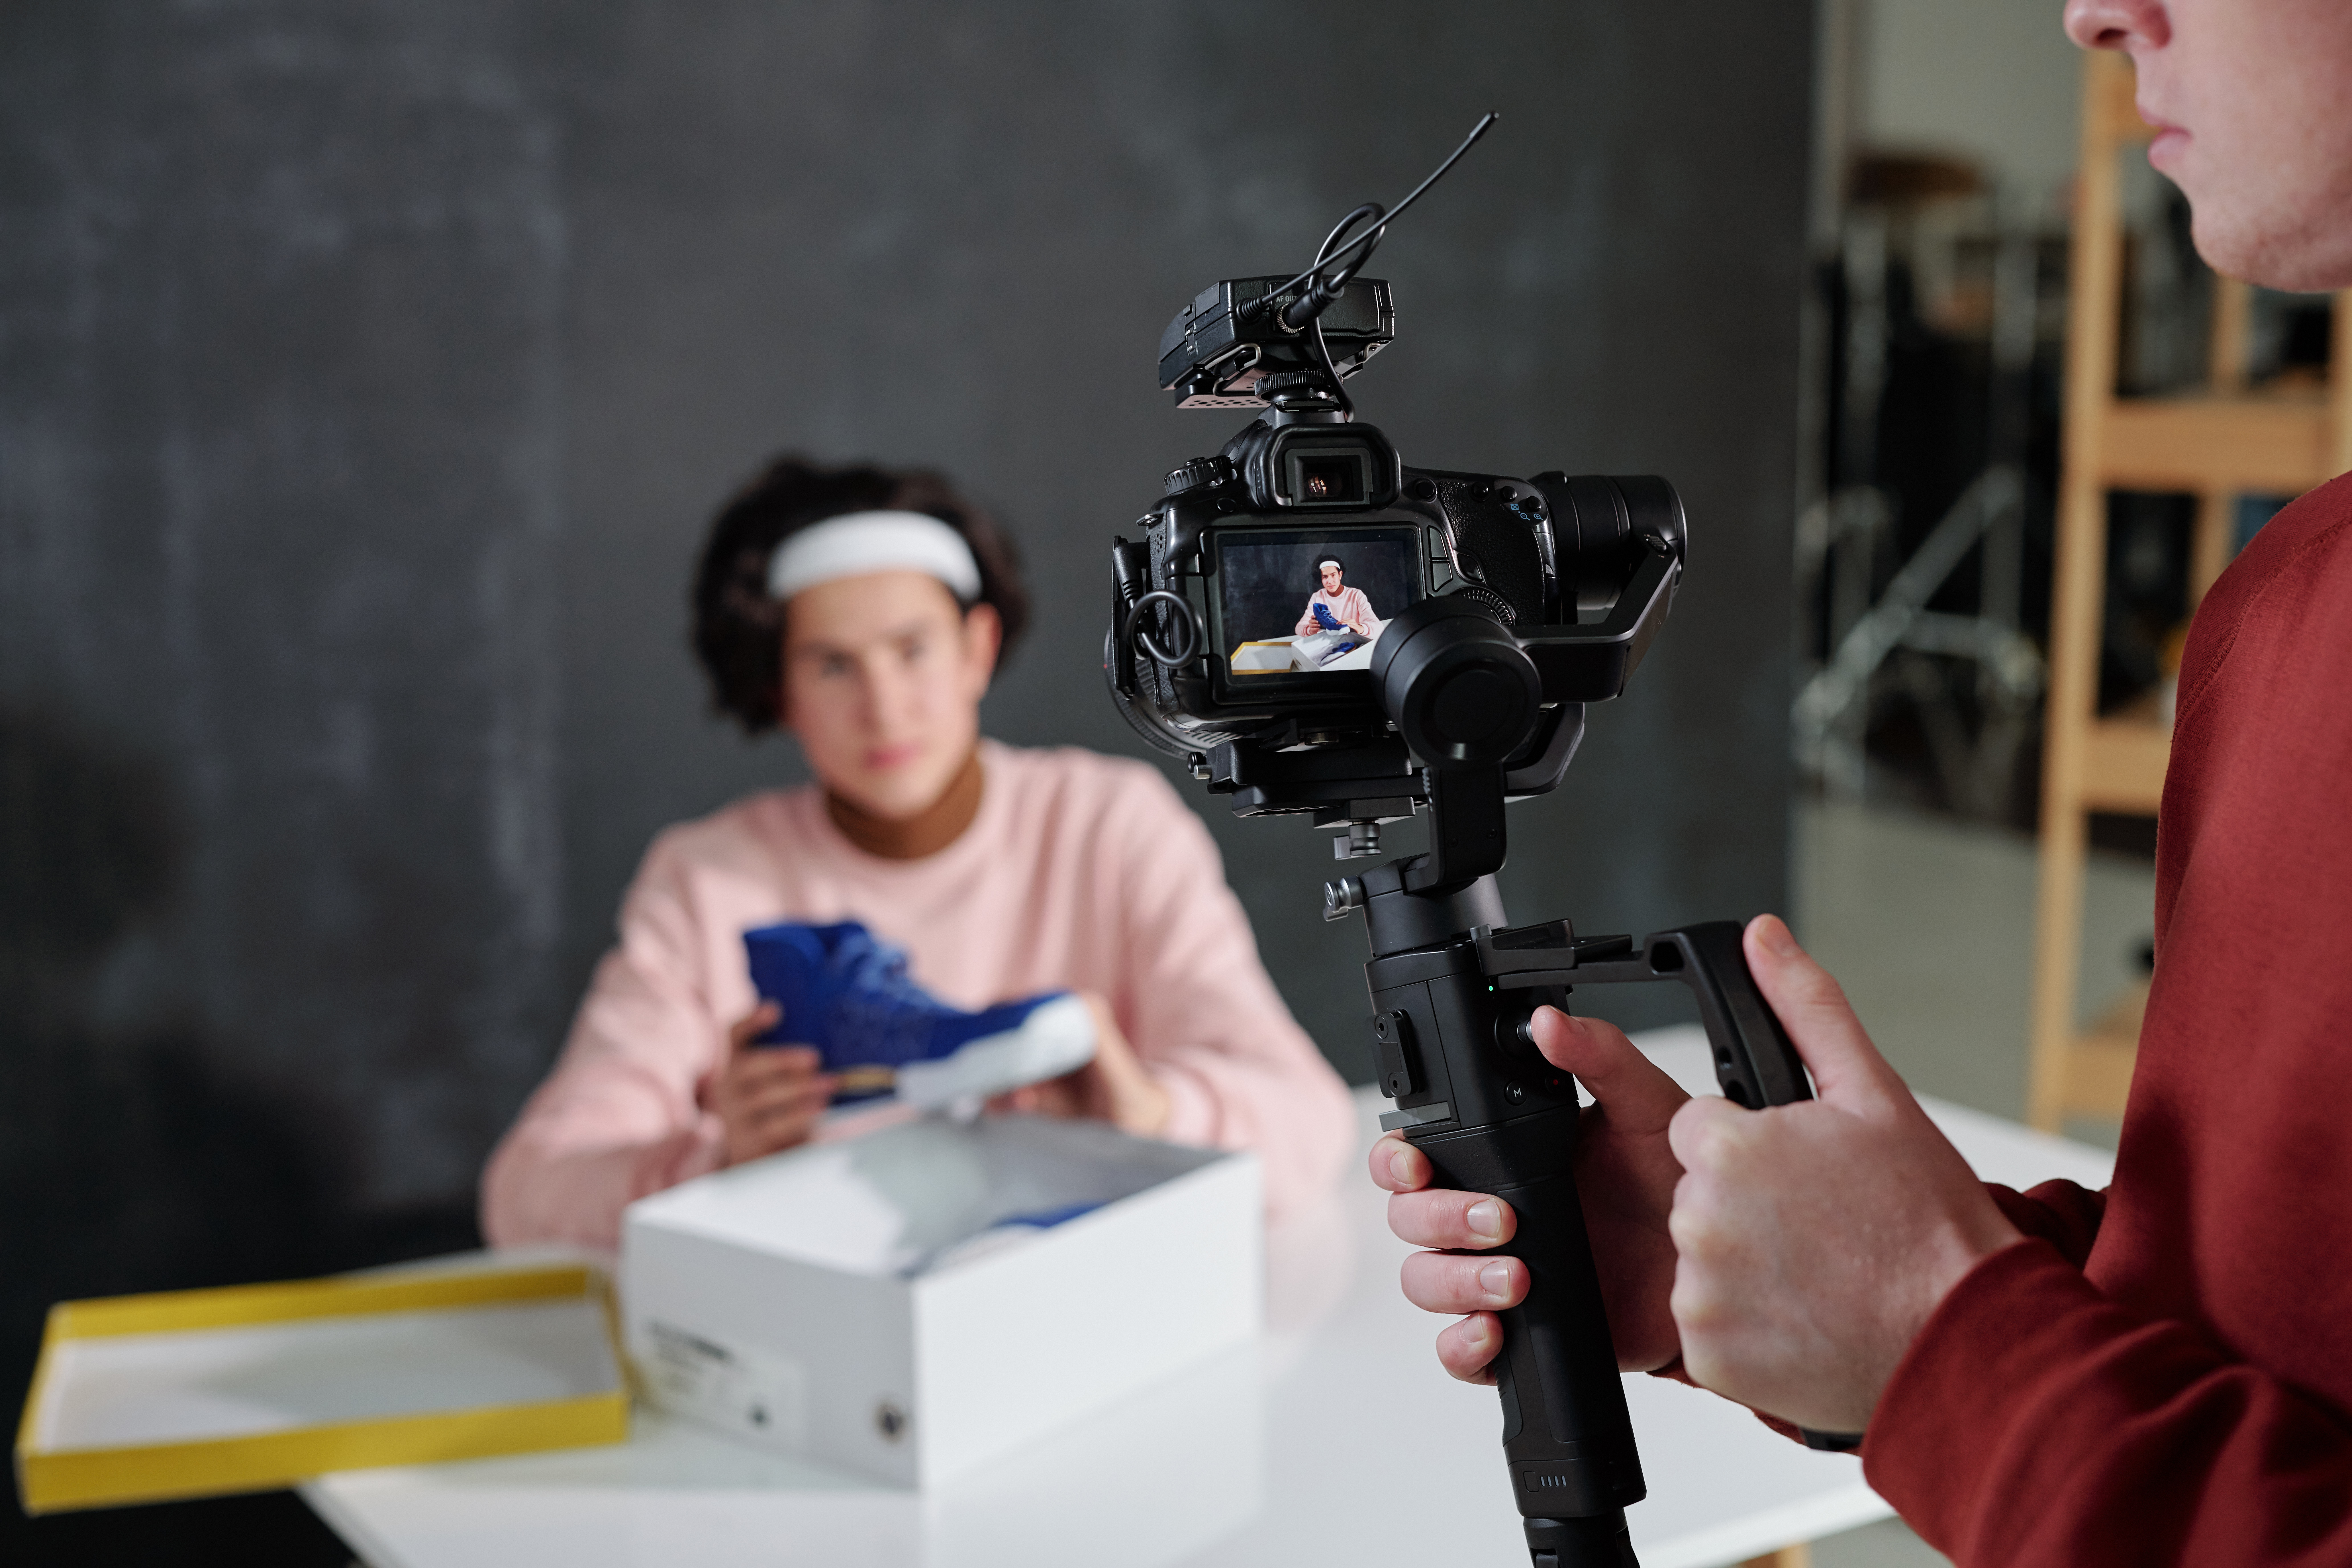 Person holding product to use in promotional video.